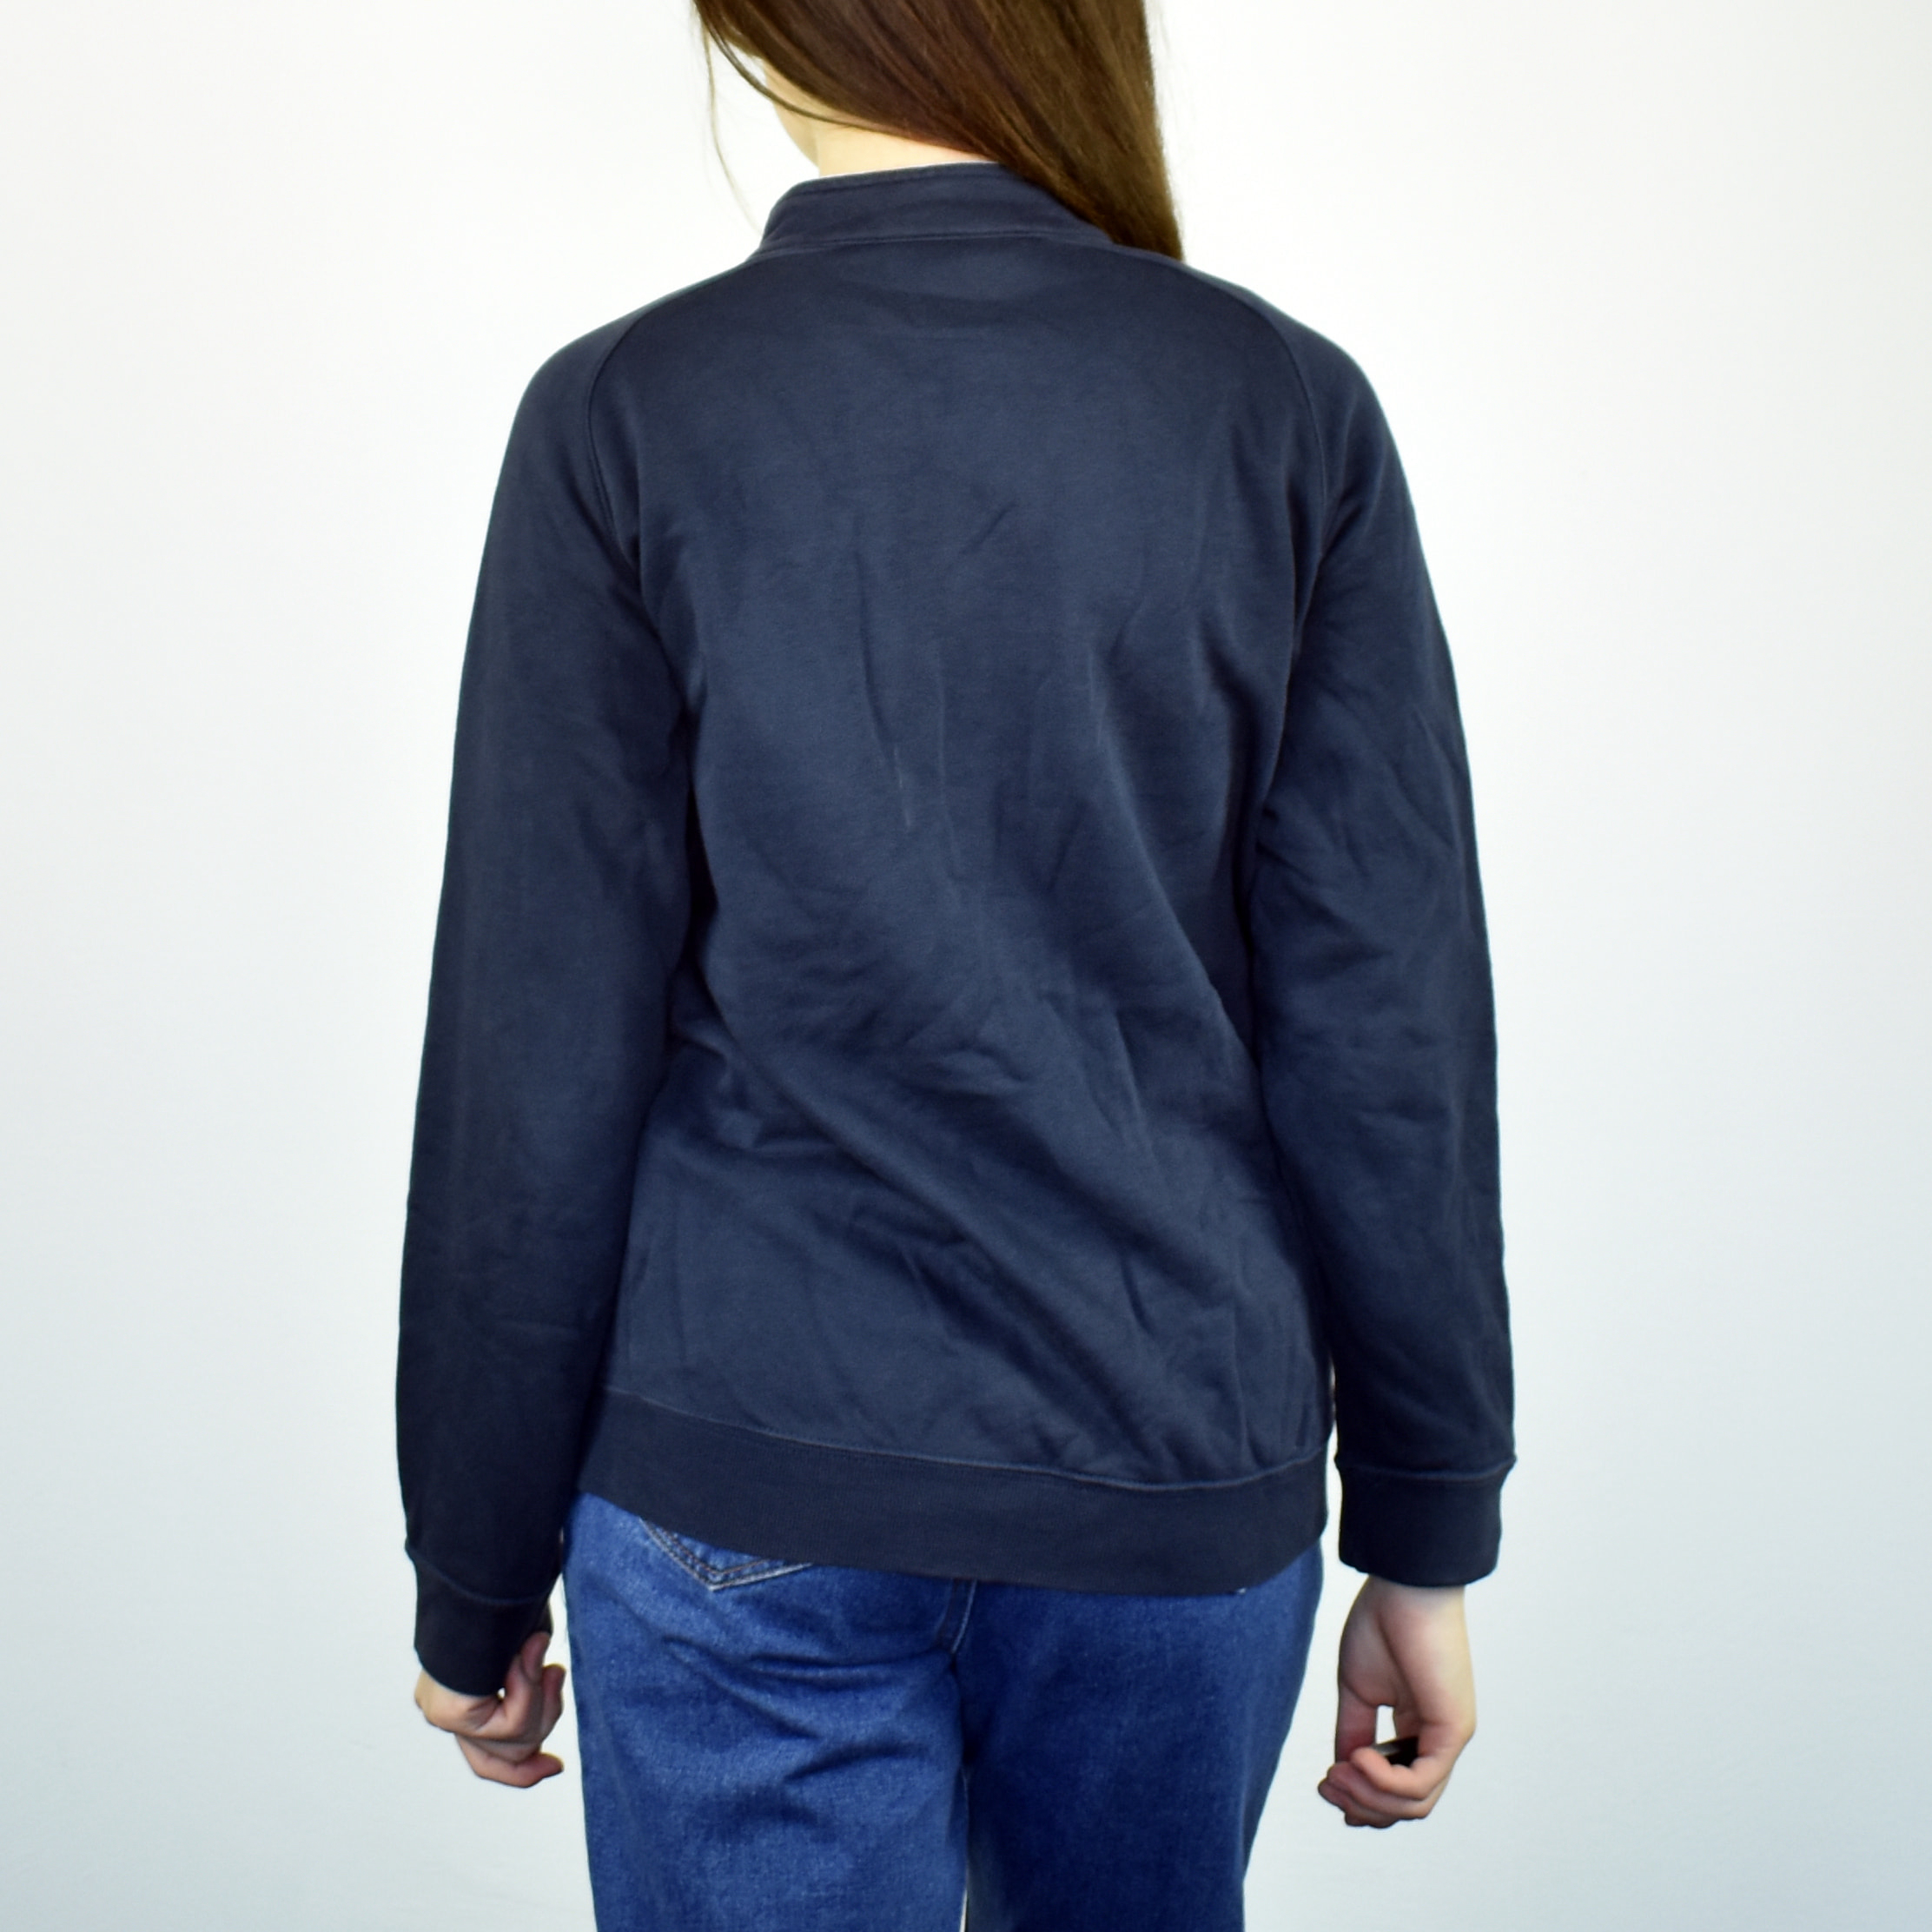 Unisex Vintage Champion zip up sweatshirt pullover in navy blue size S